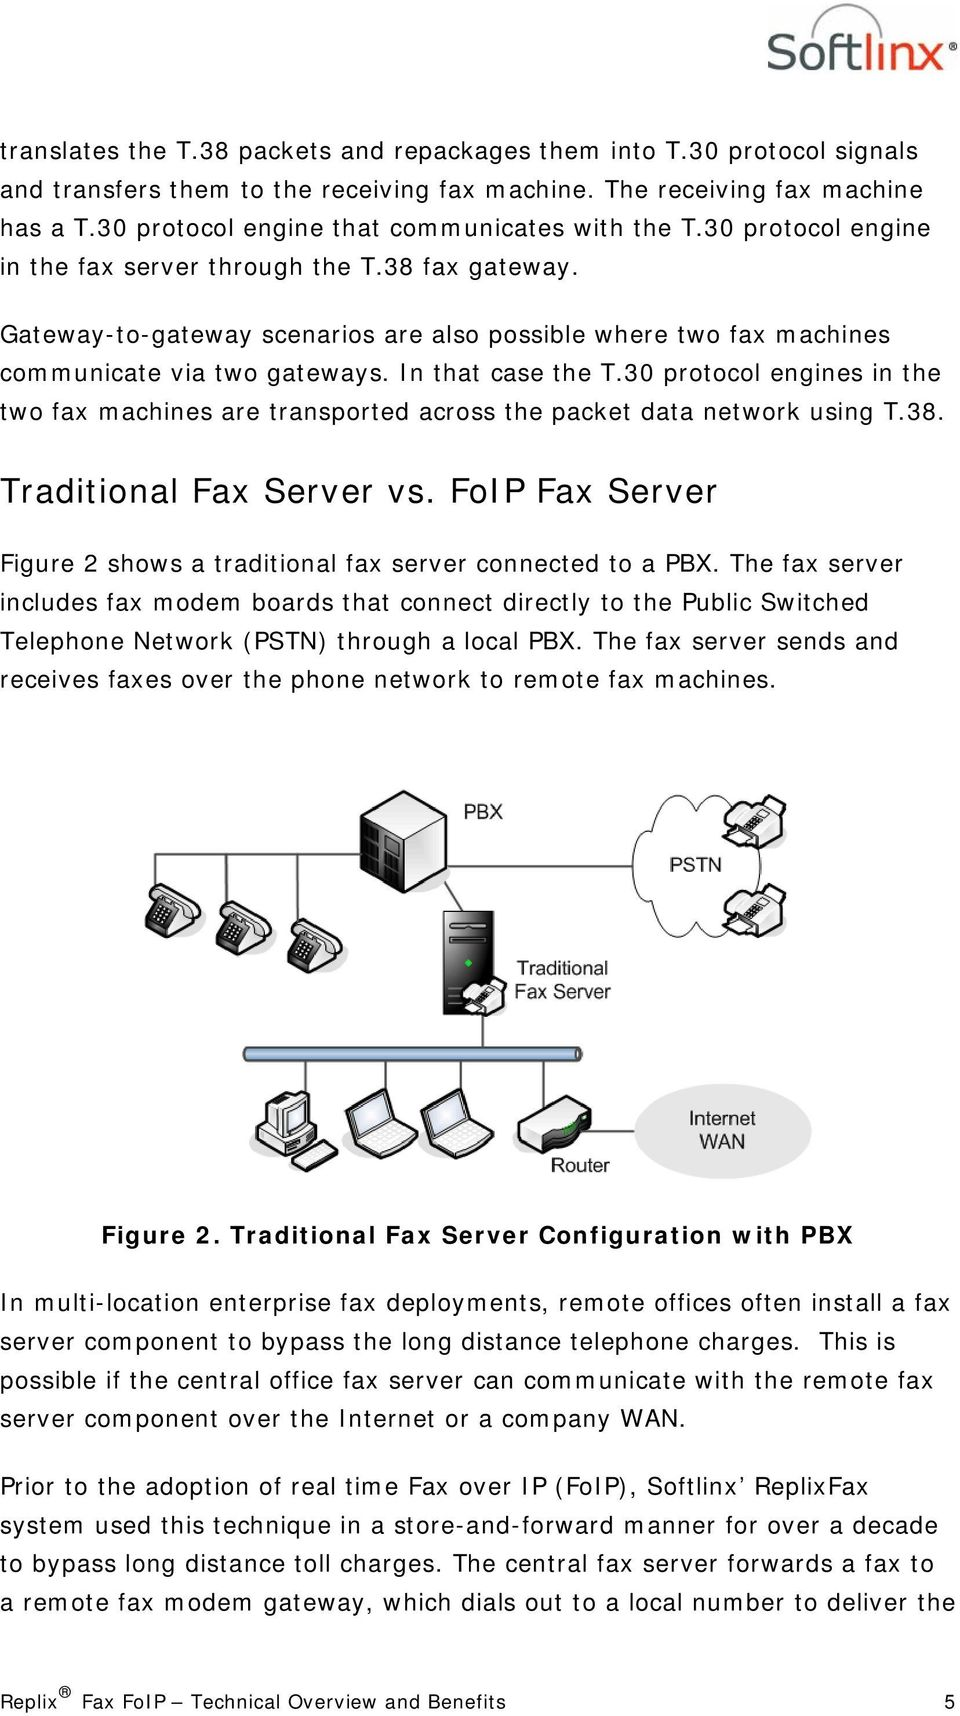 Gateway-to-gateway scenarios are also possible where two fax machines communicate via two gateways. In that case the T.